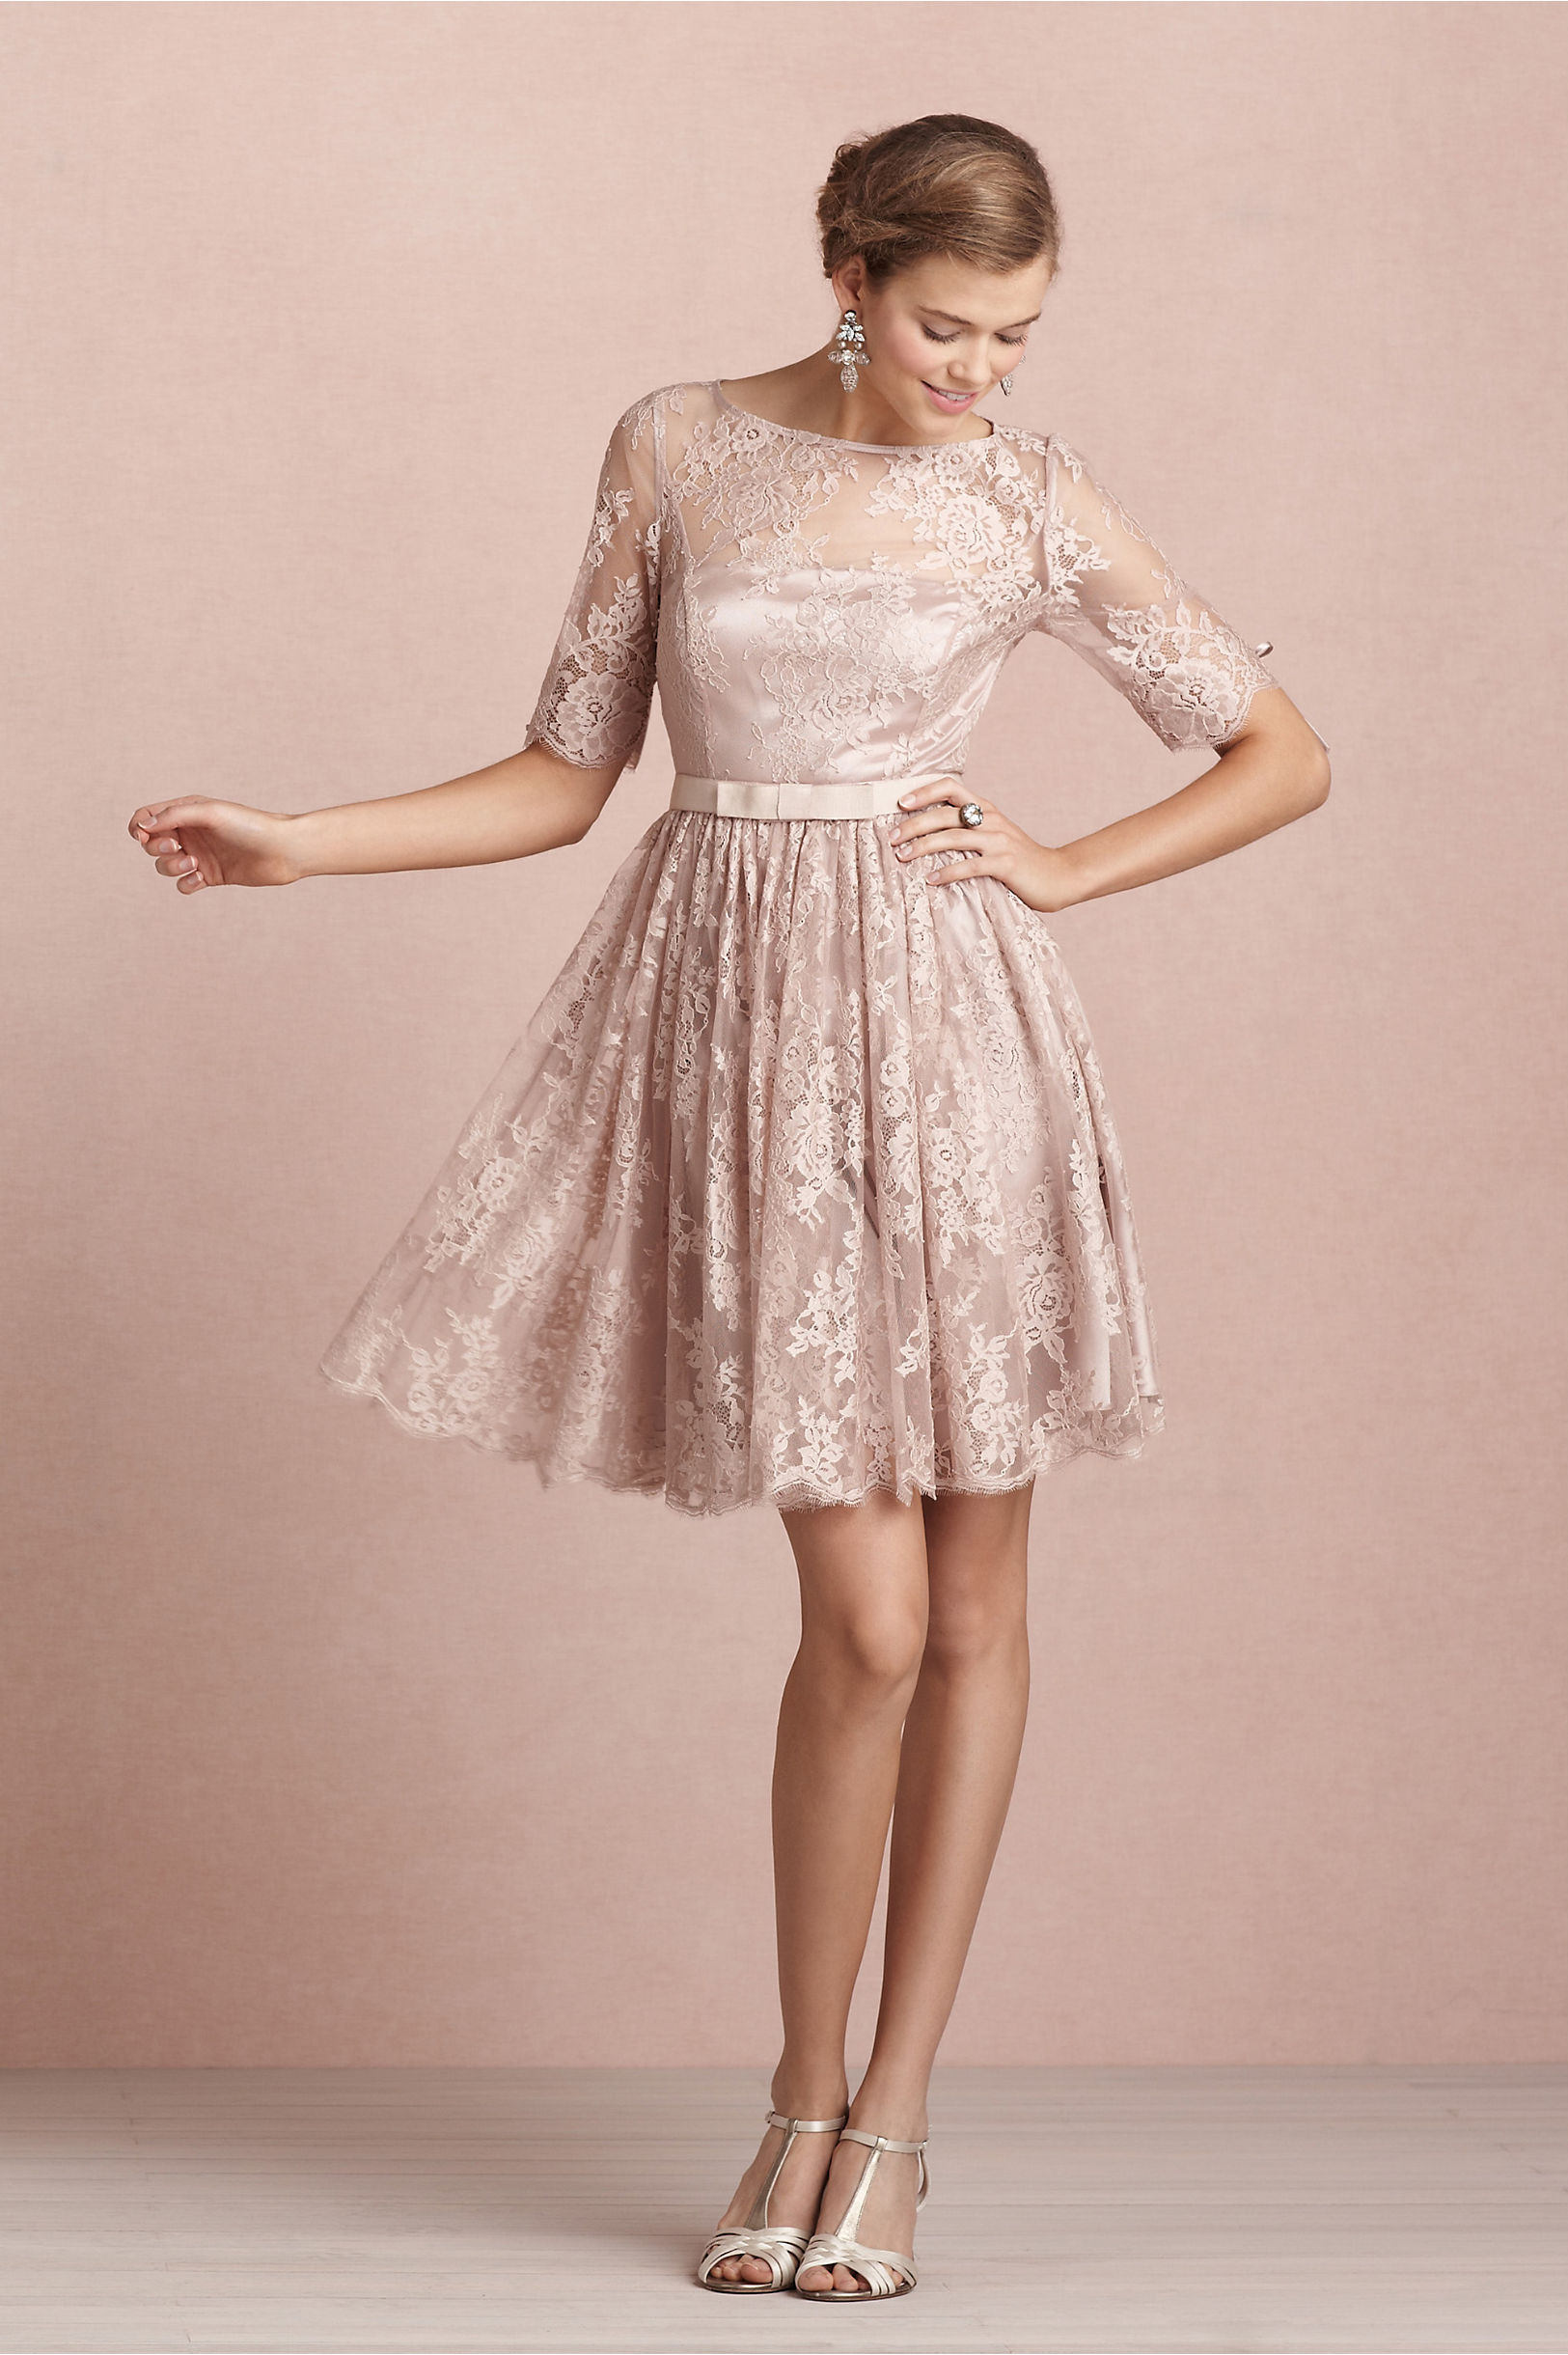 Tea Rose Dress in Bridal Party | BHLDN